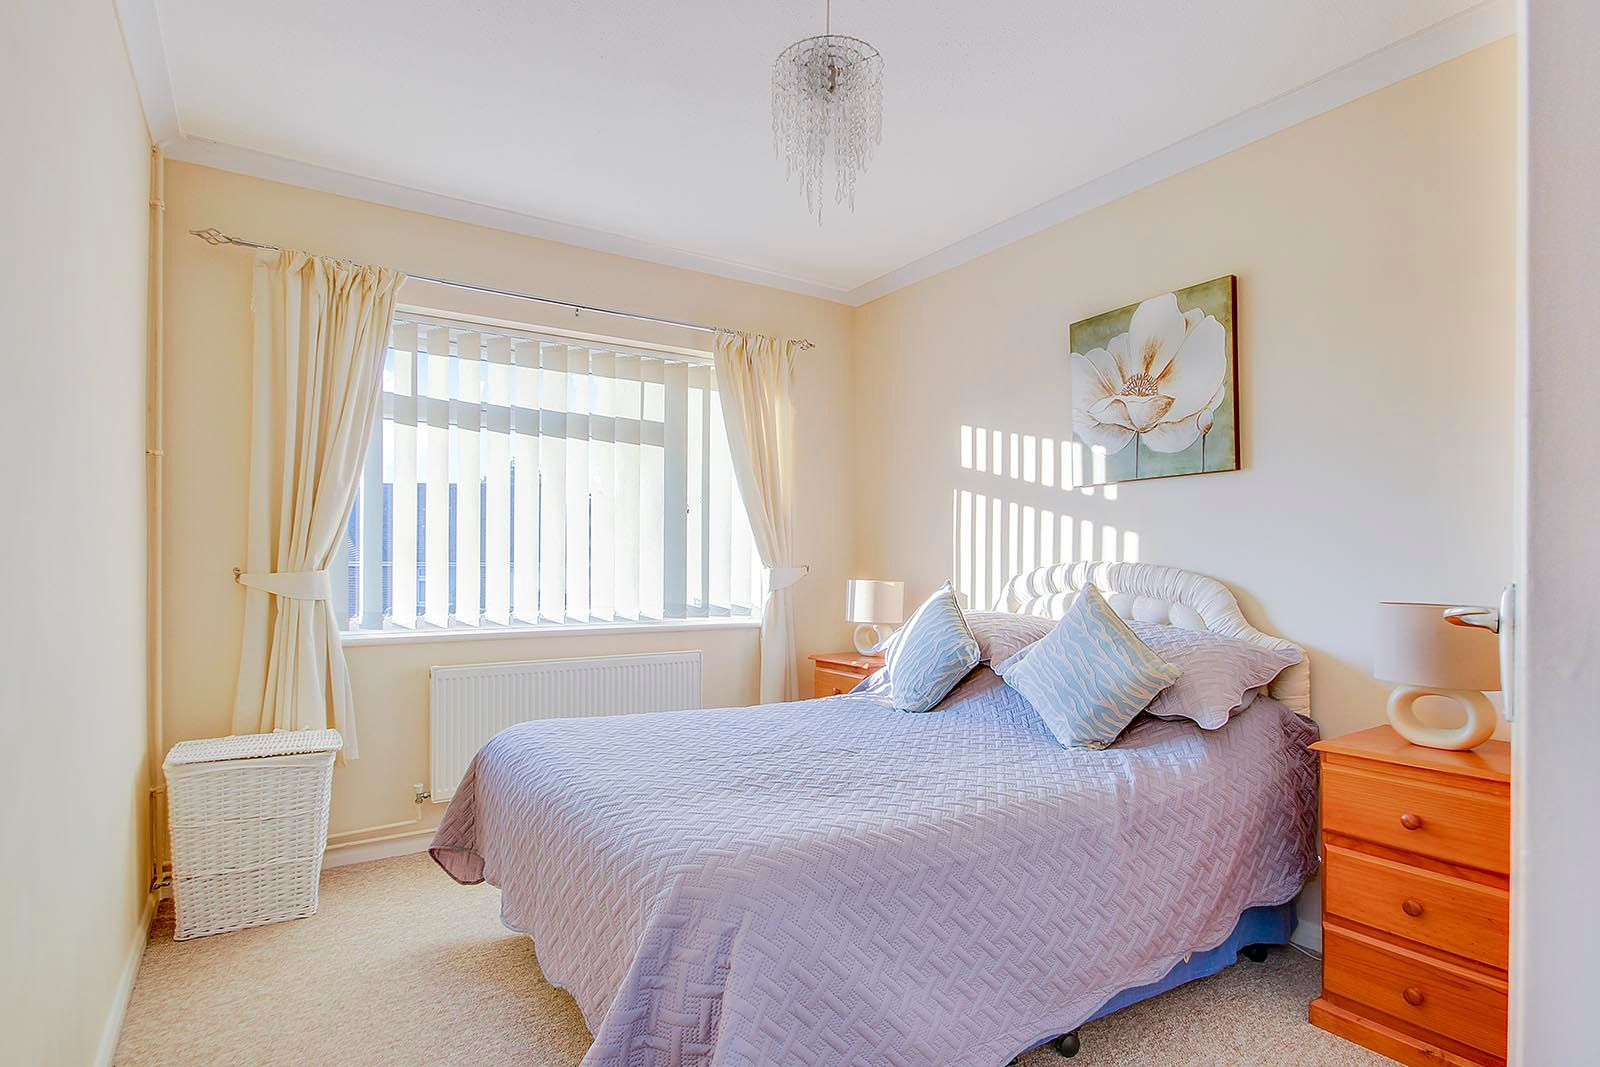 2 bed bungalow for sale in Halliford Drive (COMP AUG 19) 7